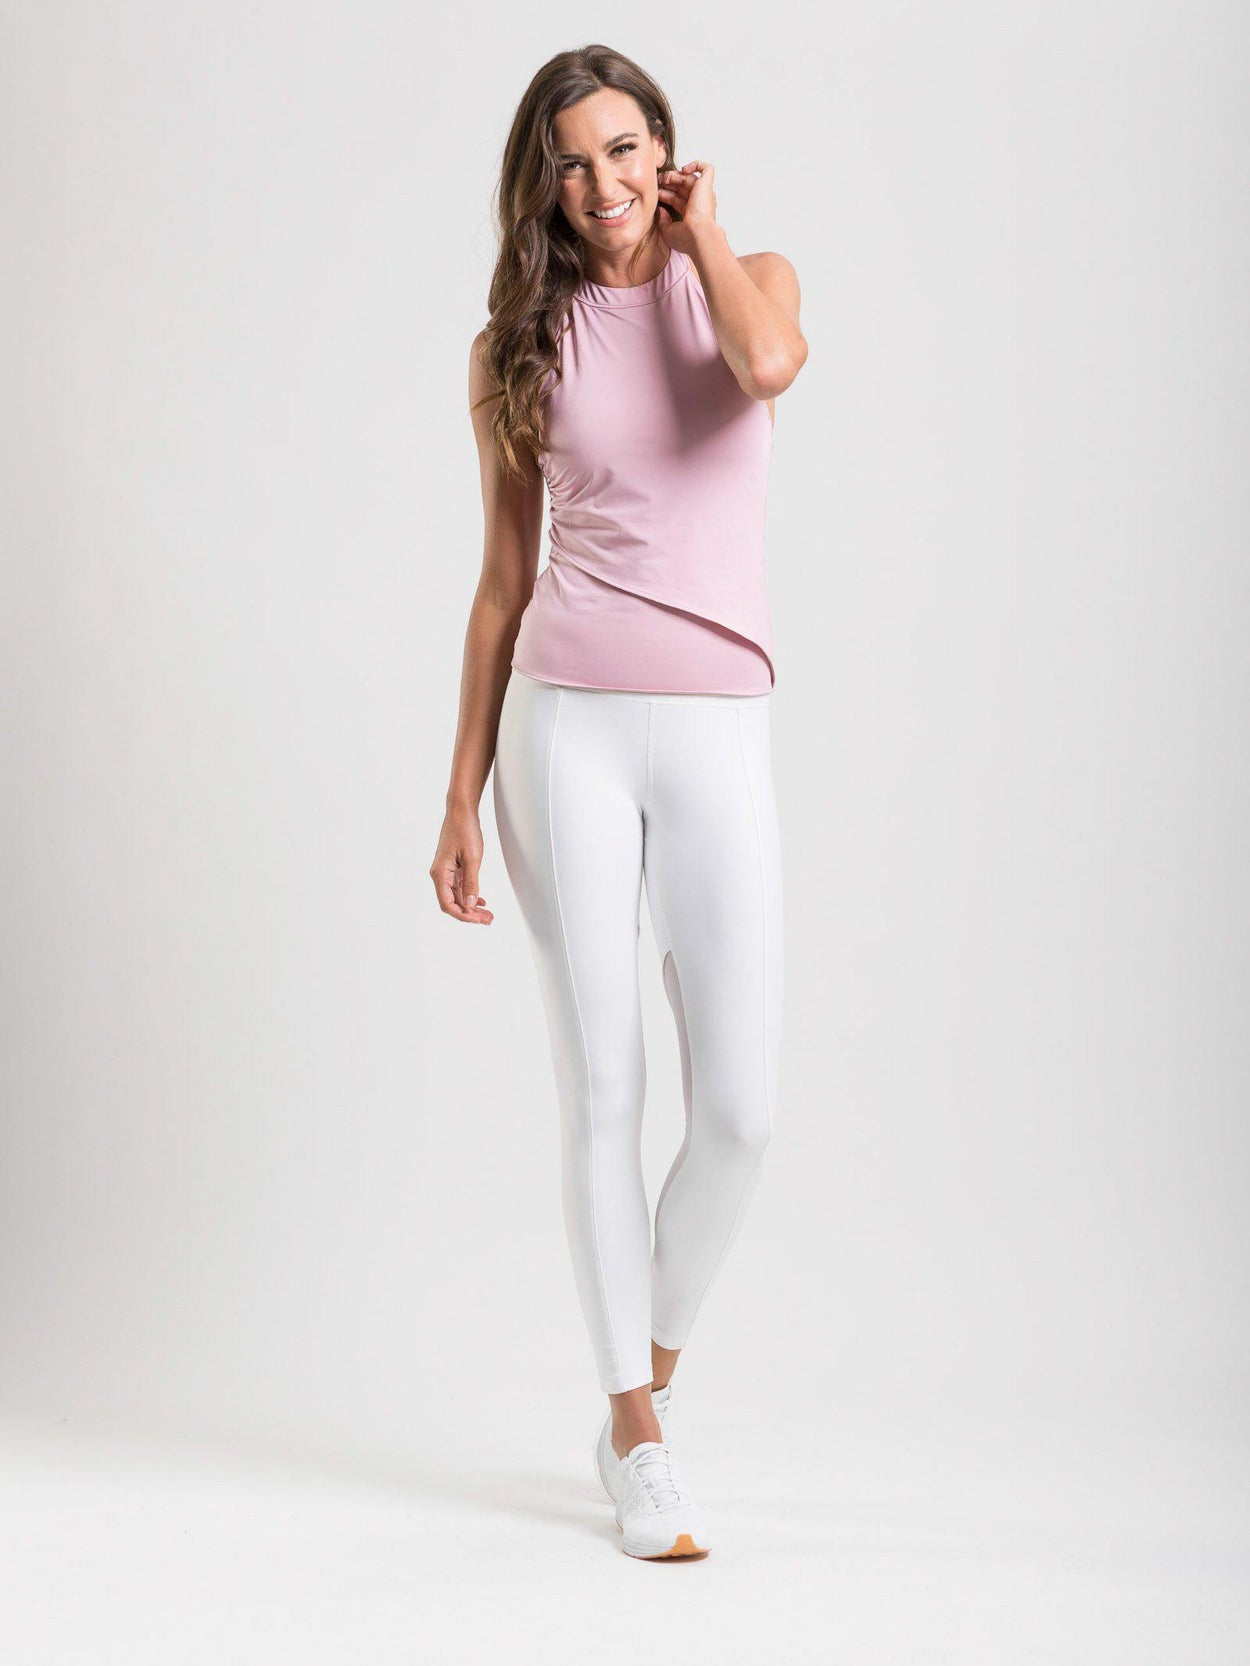 The Edge Tank in Blush - Workout Tanks, Tops and Activewear for Women